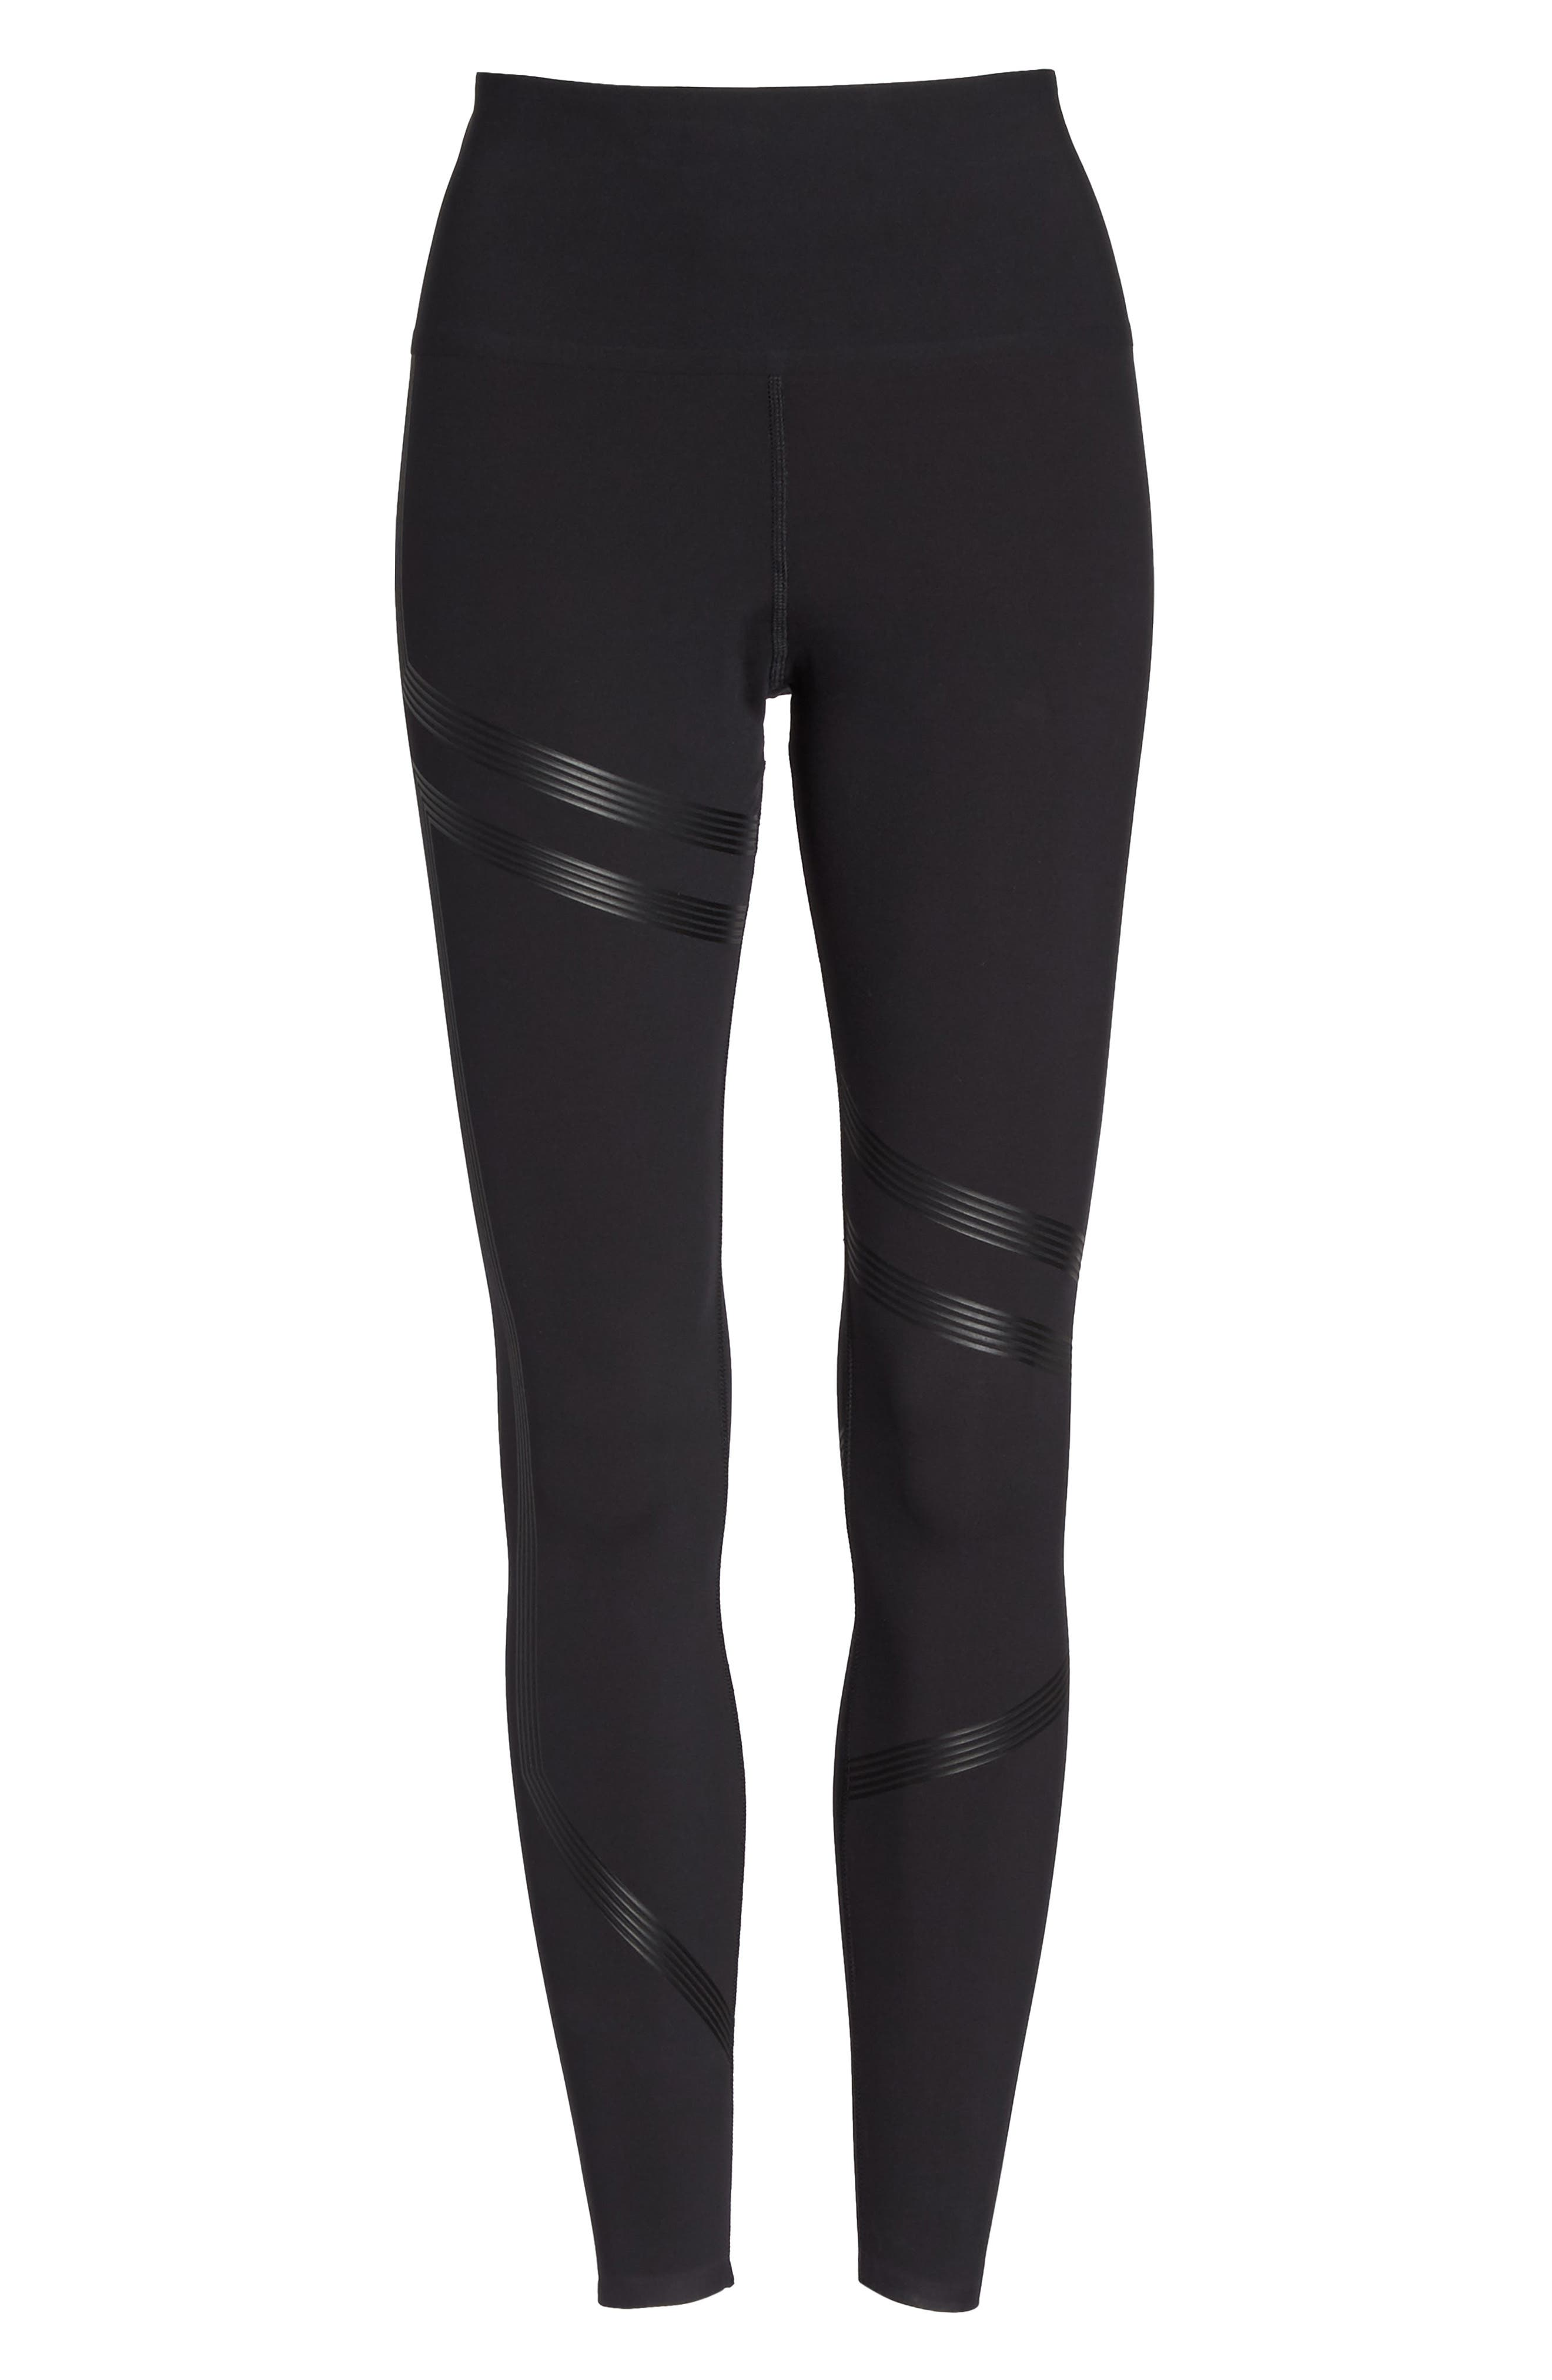 Linear High Rise Performance Tights,                             Alternate thumbnail 6, color,                             Black